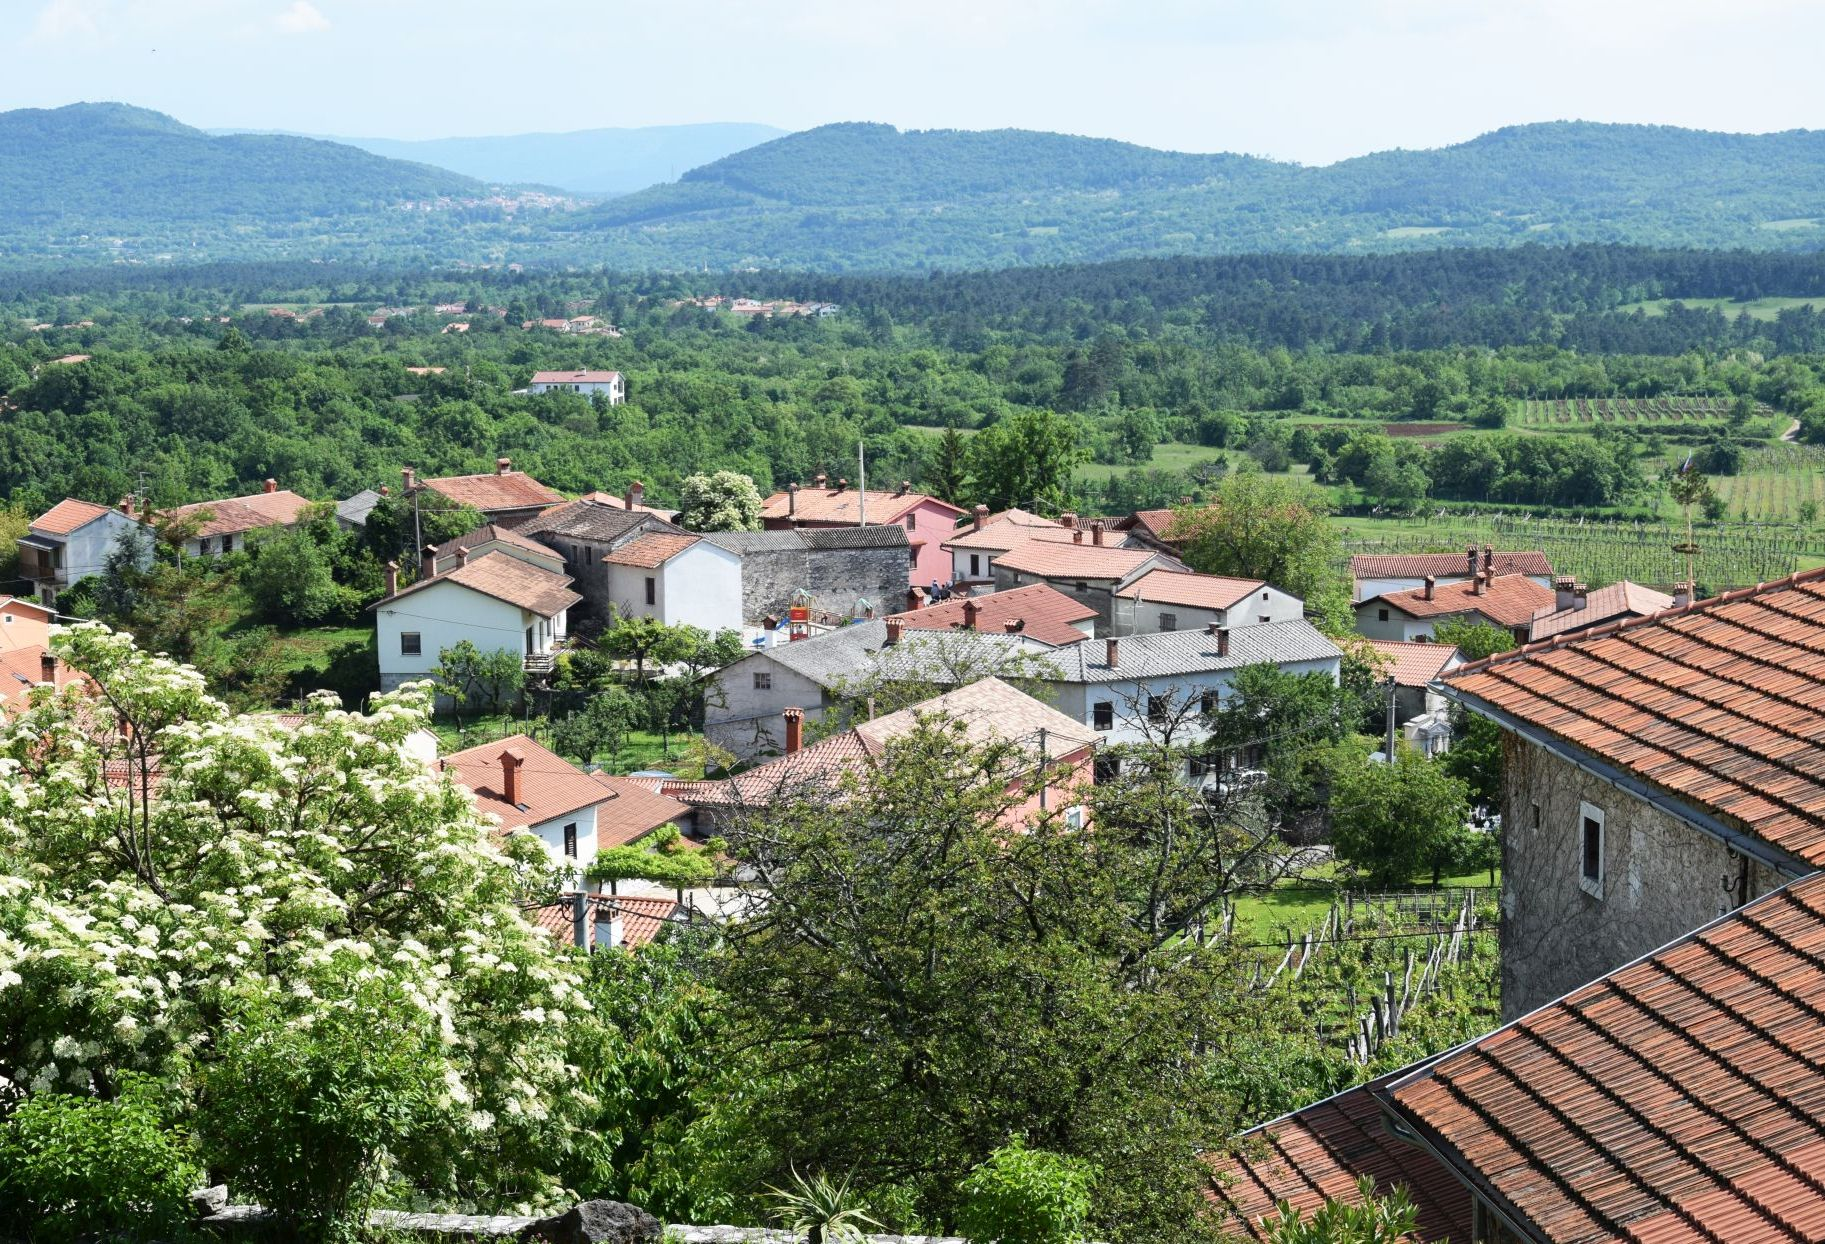 View of Tomaj village and vineyards from Tabor Hill